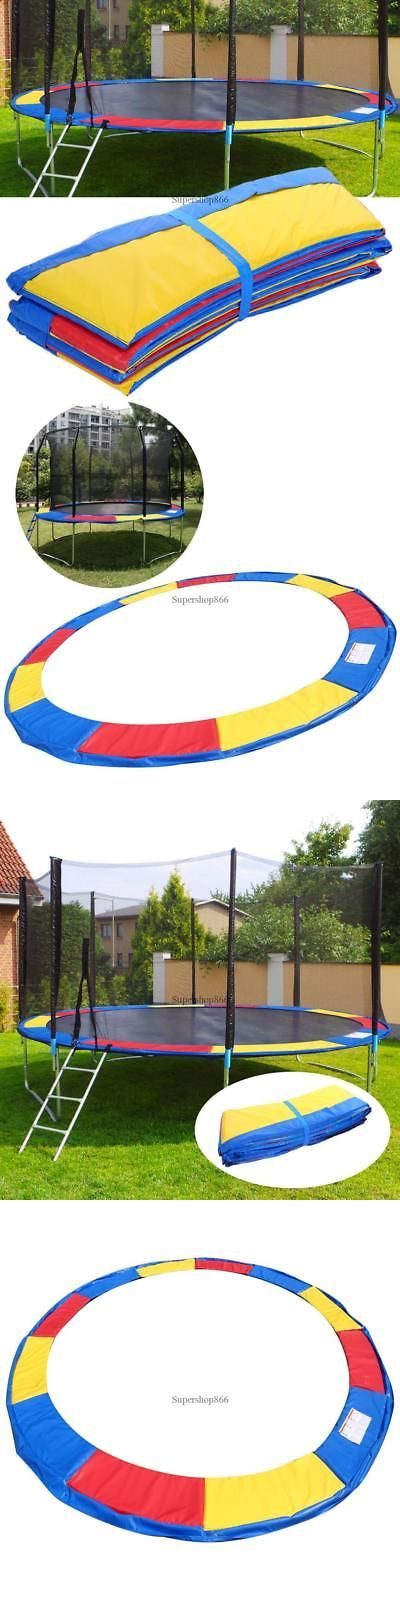 Trampolines 57275: 14Ft Trampoline Replacement Protection Frame Safety Pad Round Cover Mat Gym -> BUY IT NOW ONLY: $61.27 on eBay!